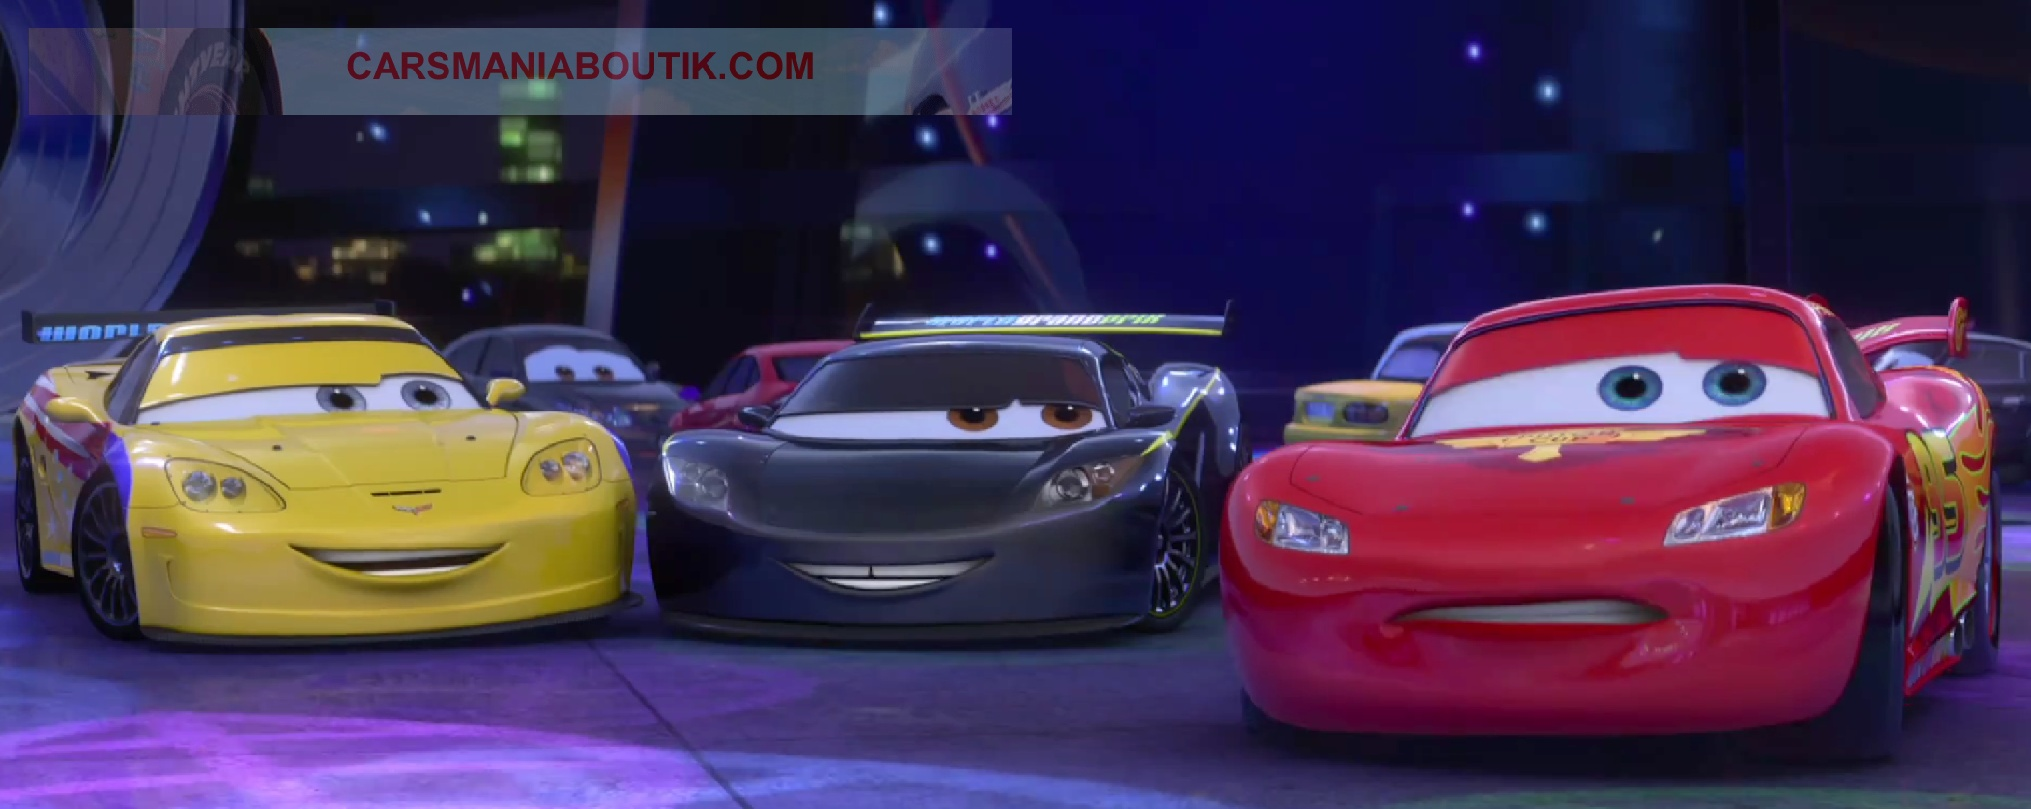 disney pixar cars 2 images issues de la bande annonce disneycarsmania. Black Bedroom Furniture Sets. Home Design Ideas